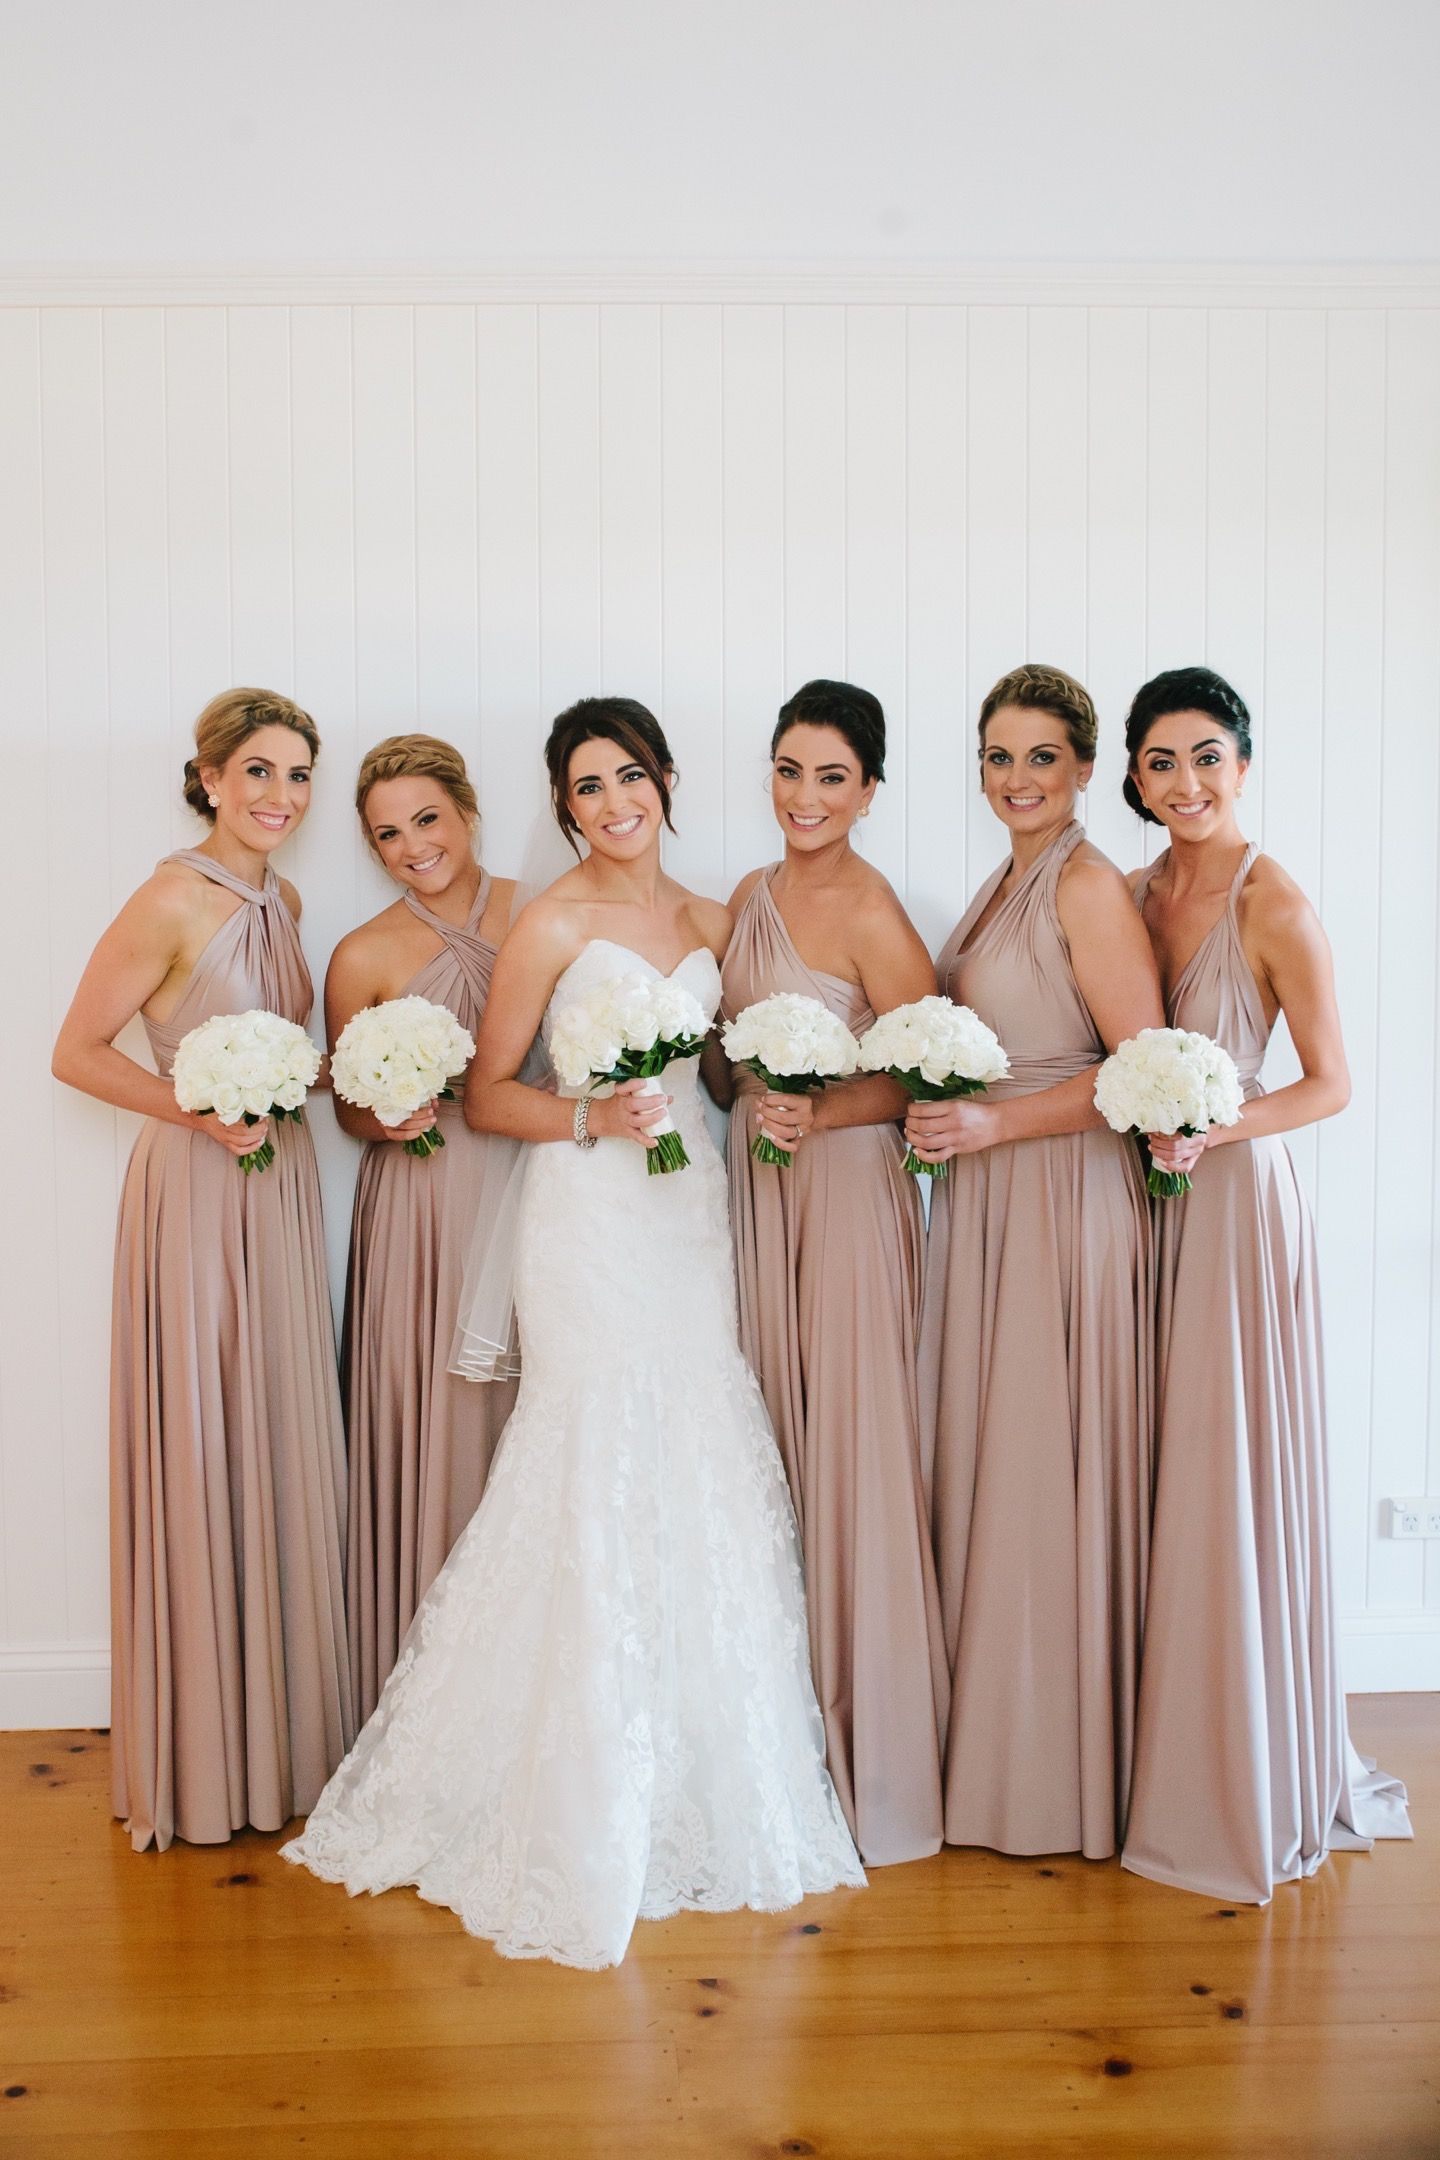 Multiway bridesmaid dresses in colour blush pearl www multiway bridesmaid dresses in colour blush pearl goddessbynature ombrellifo Image collections